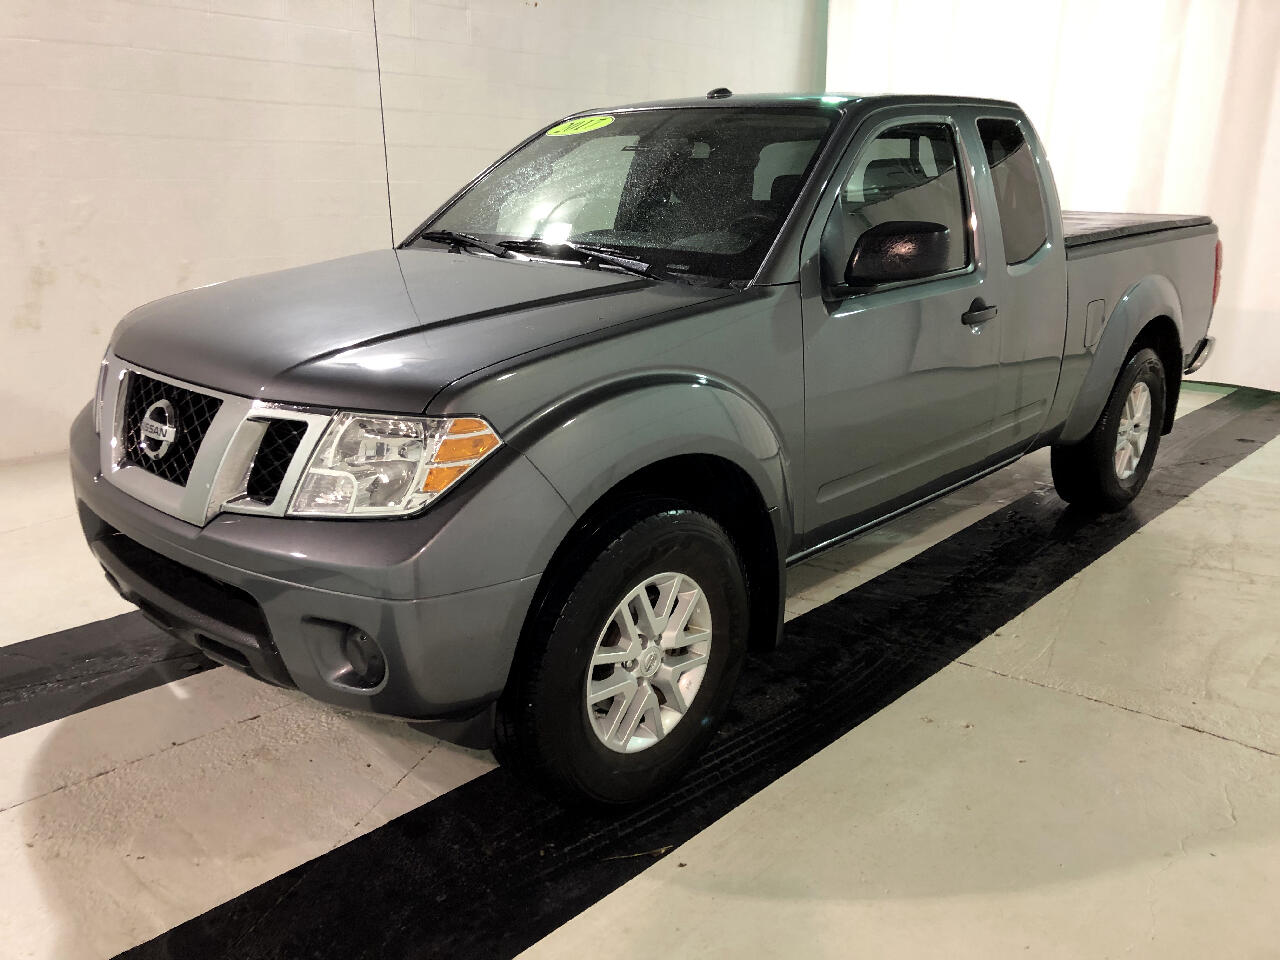 2017 Nissan Frontier 2017.5 King Cab 4x4 SV V6 Auto